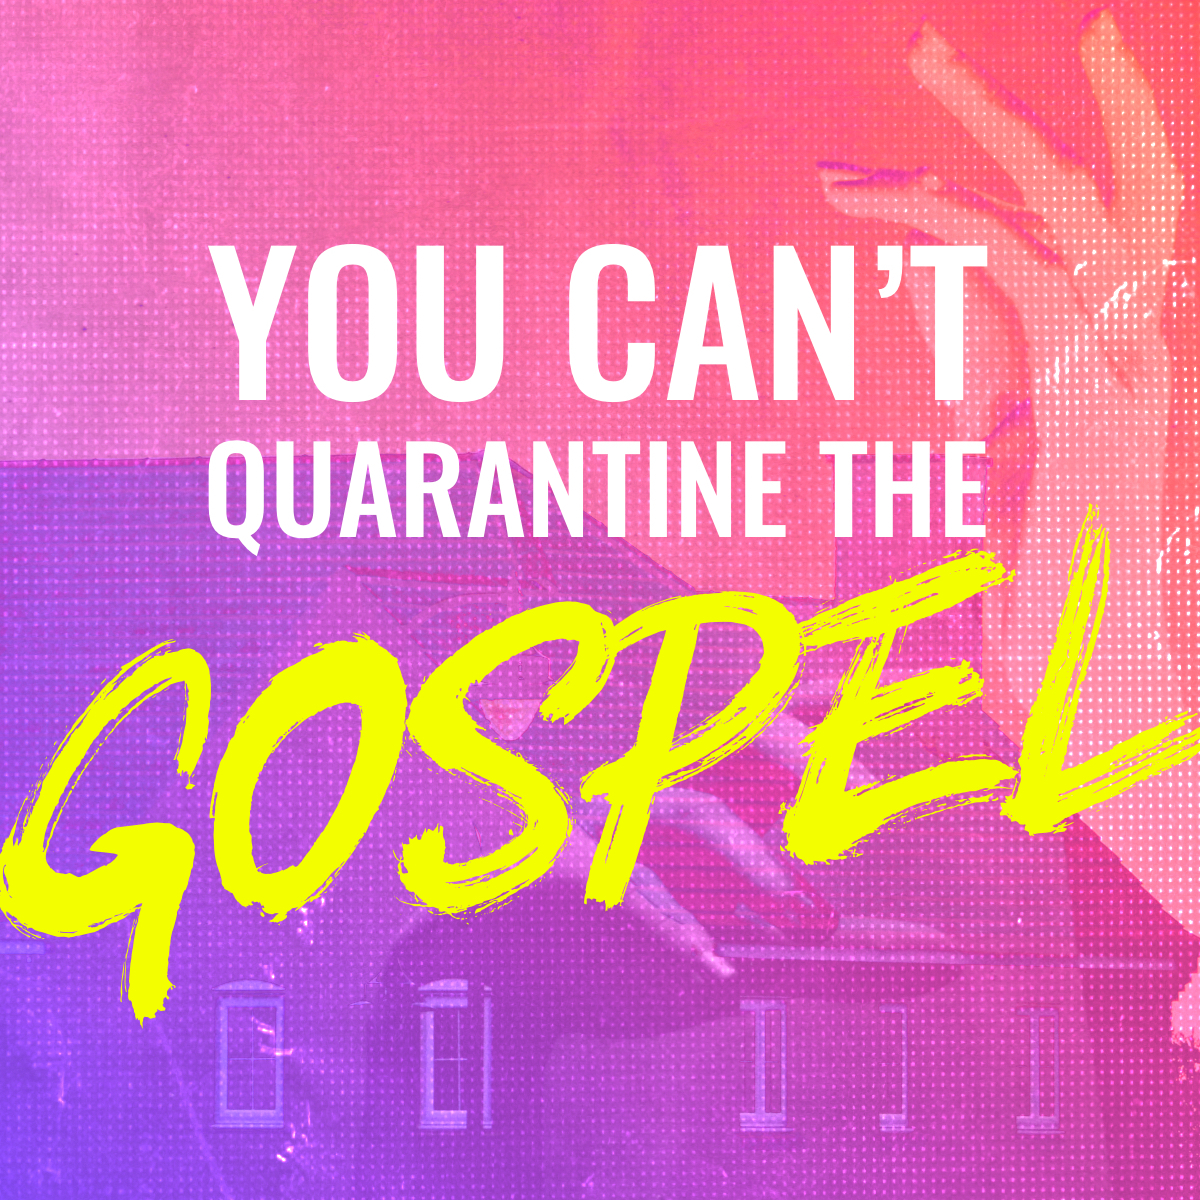 You Can't Quarantine the Gospel